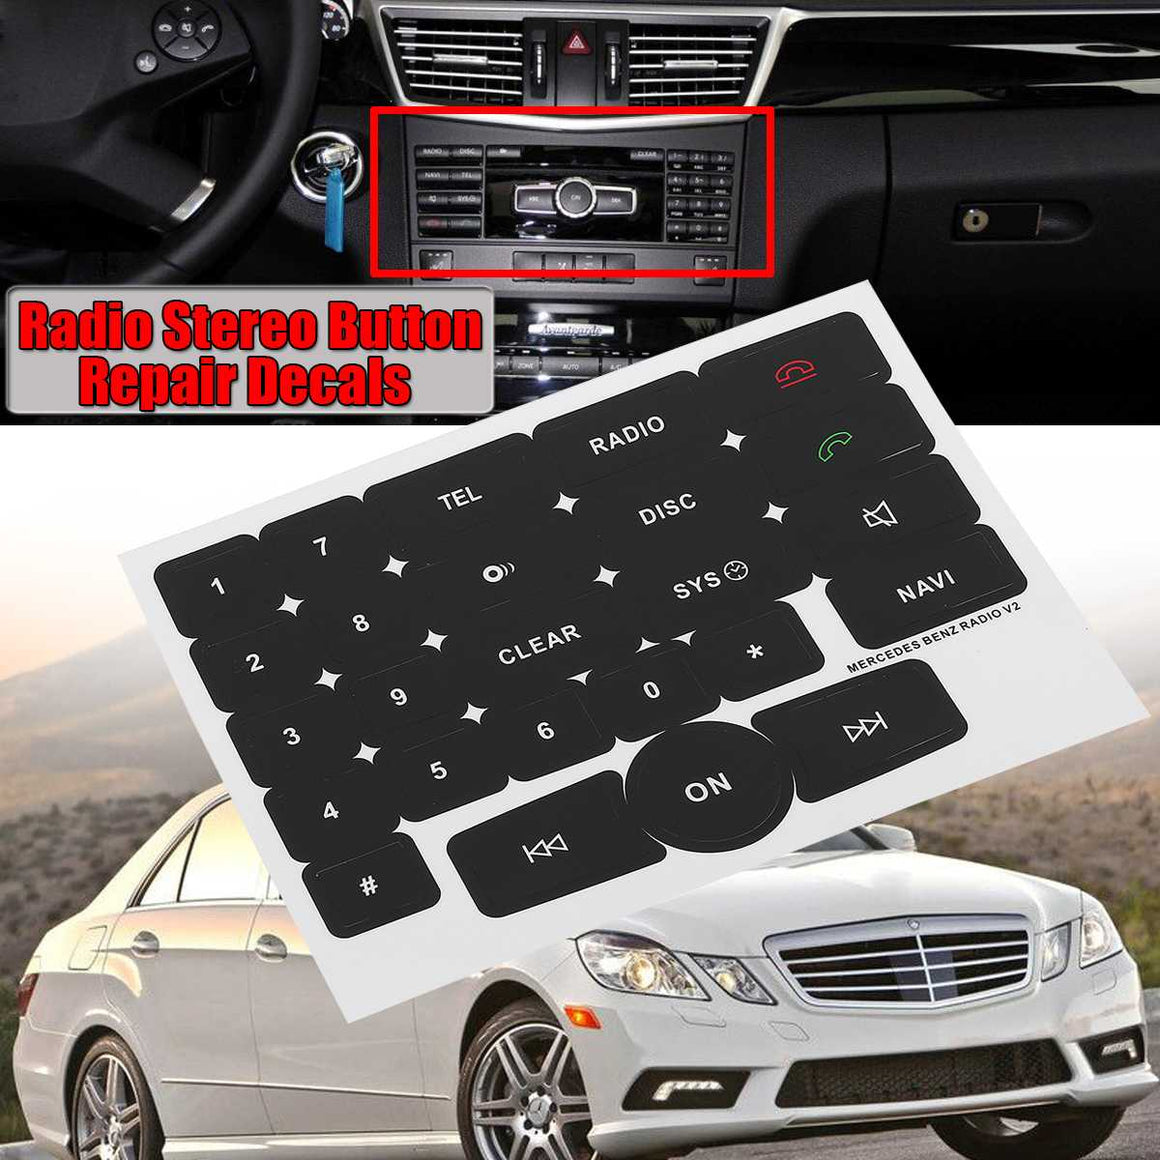 Stereo Button Repair Decals Stickers For Mercedes For Benz Radio V2 Repair Car Stickers